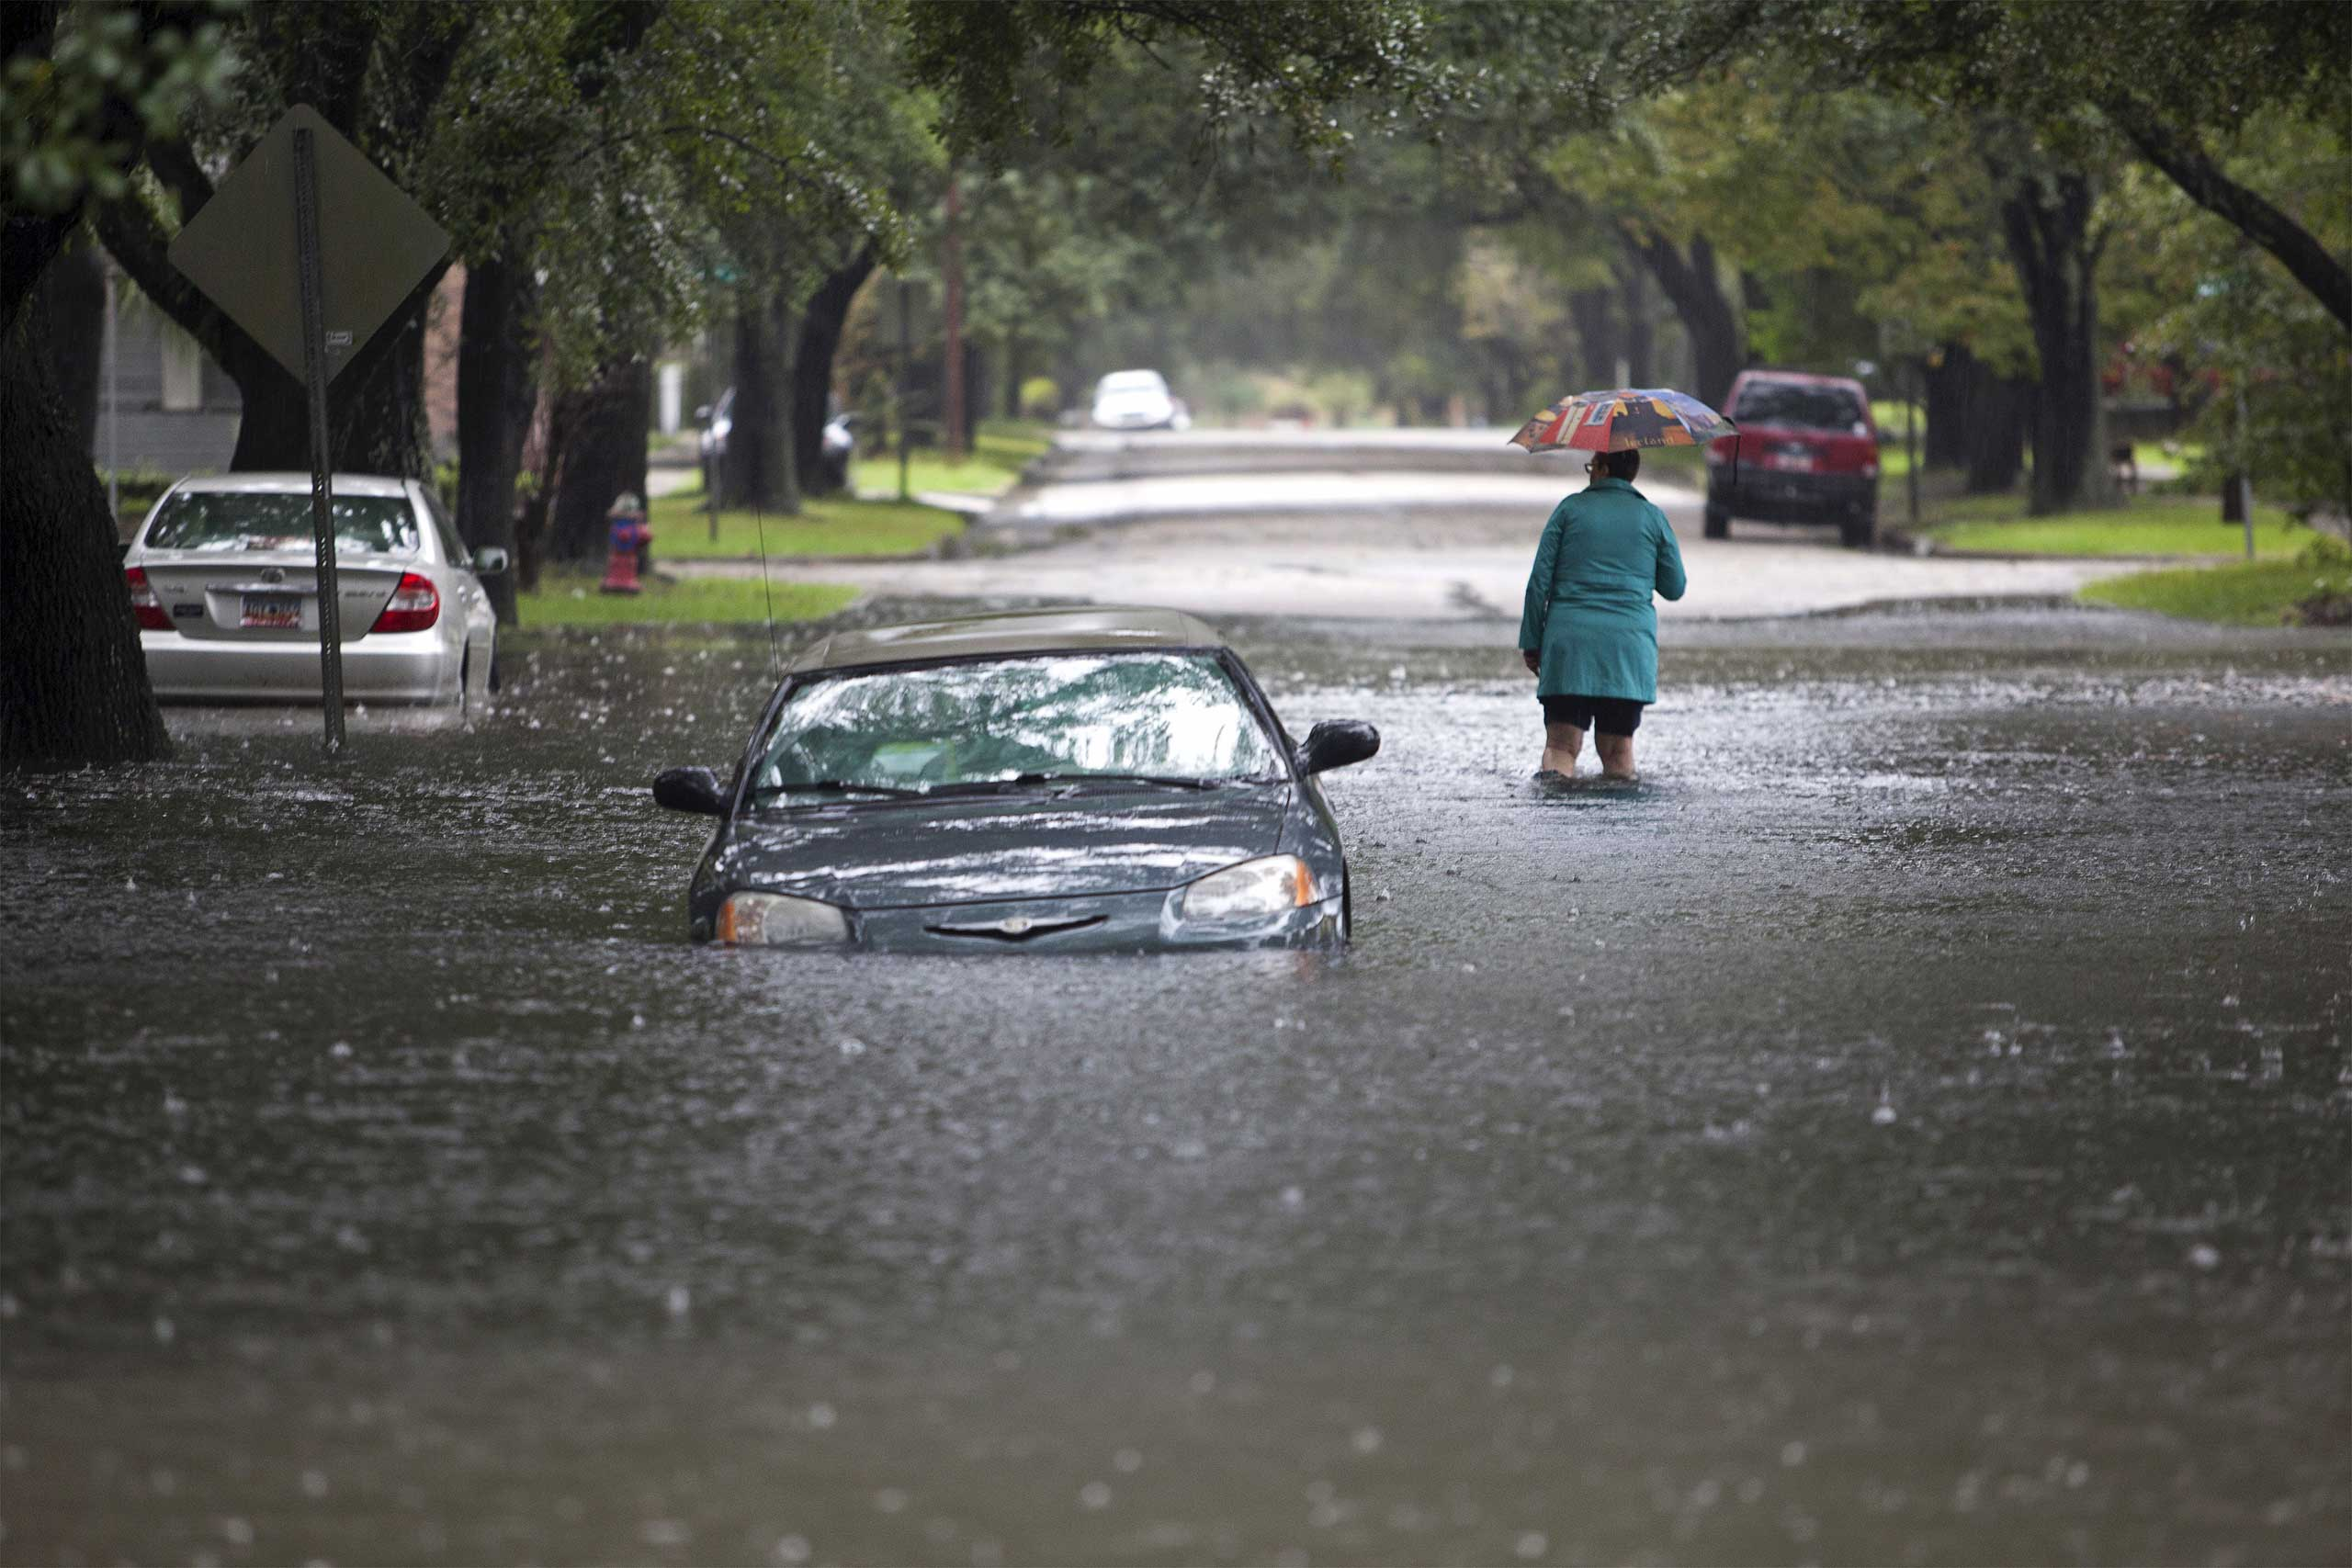 Clare Reigard of Georgetown, South Carolina, abandons her car after it stalled on Duke Street due to heavy rains in Georgetown, S.C., Oct. 4, 2015.